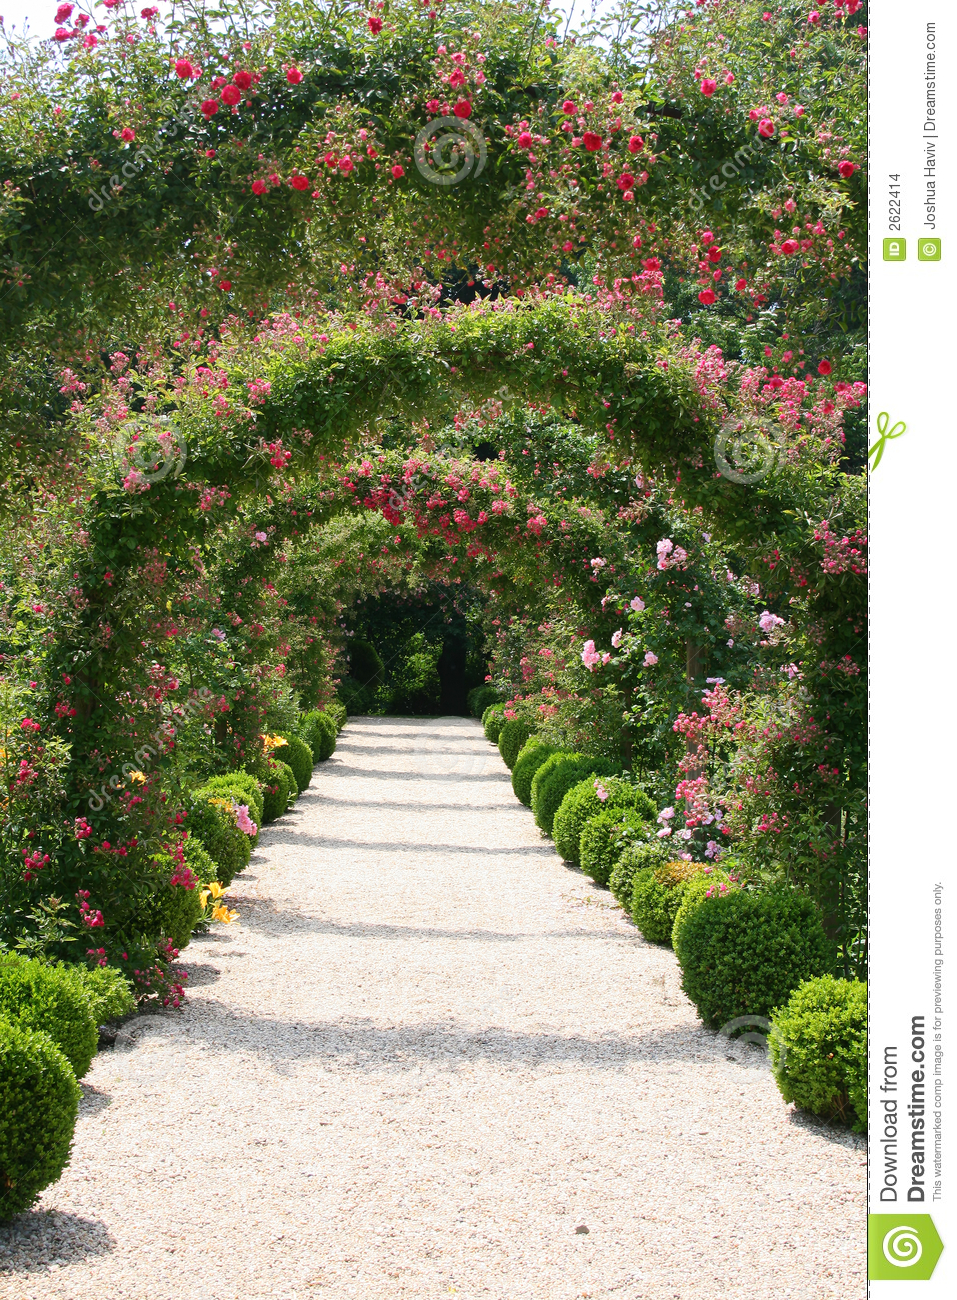 Rose Garden Landscape Stock Photo. Image Of Pink, Pretty